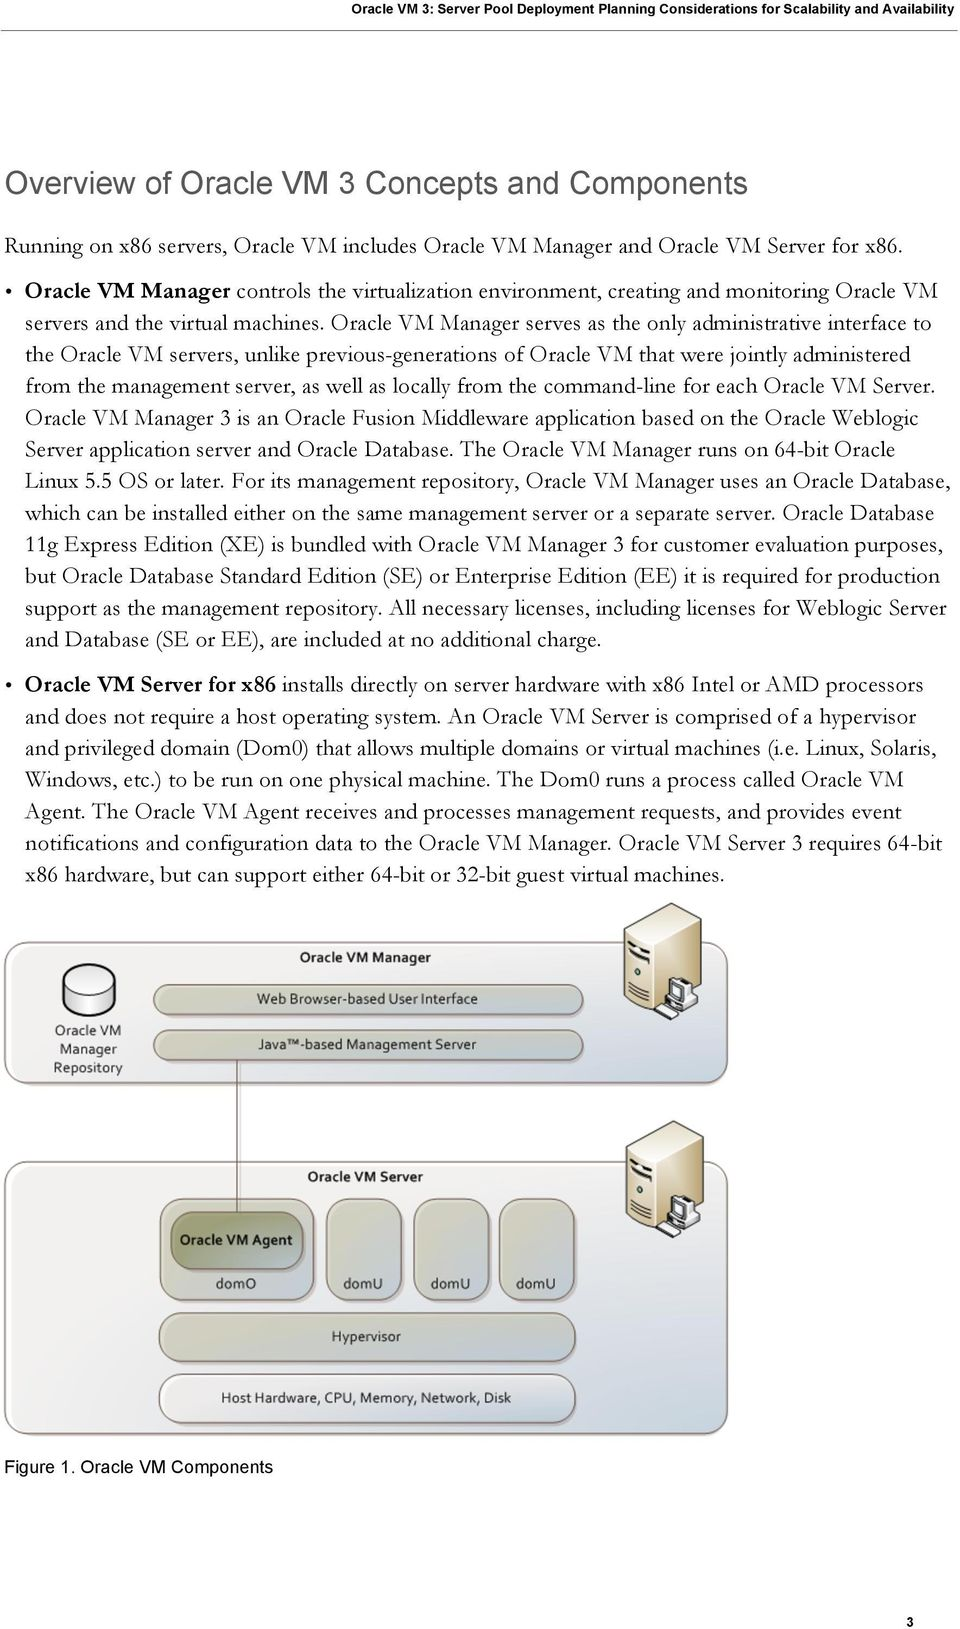 Oracle VM Manager serves as the only administrative interface to the Oracle VM servers, unlike previous-generations of Oracle VM that were jointly administered from the management server, as well as